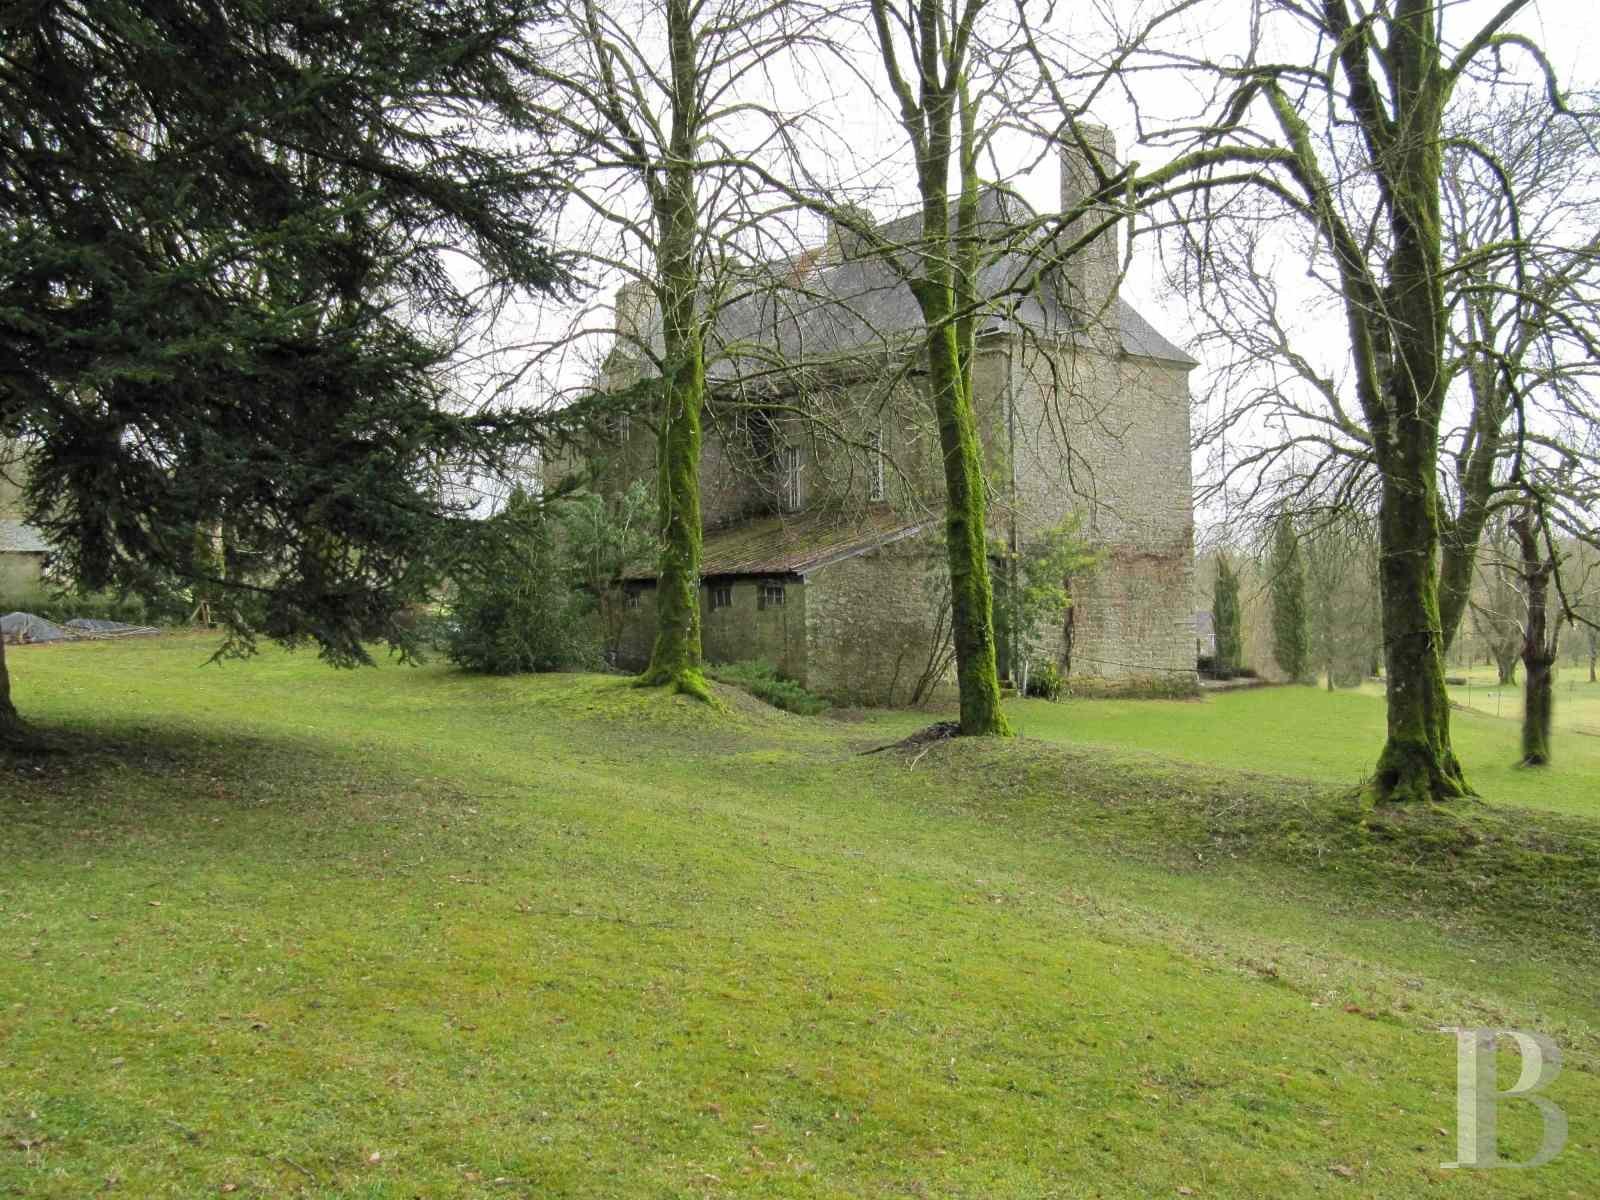 property for sale France brittany morbihan abbey - 3 zoom